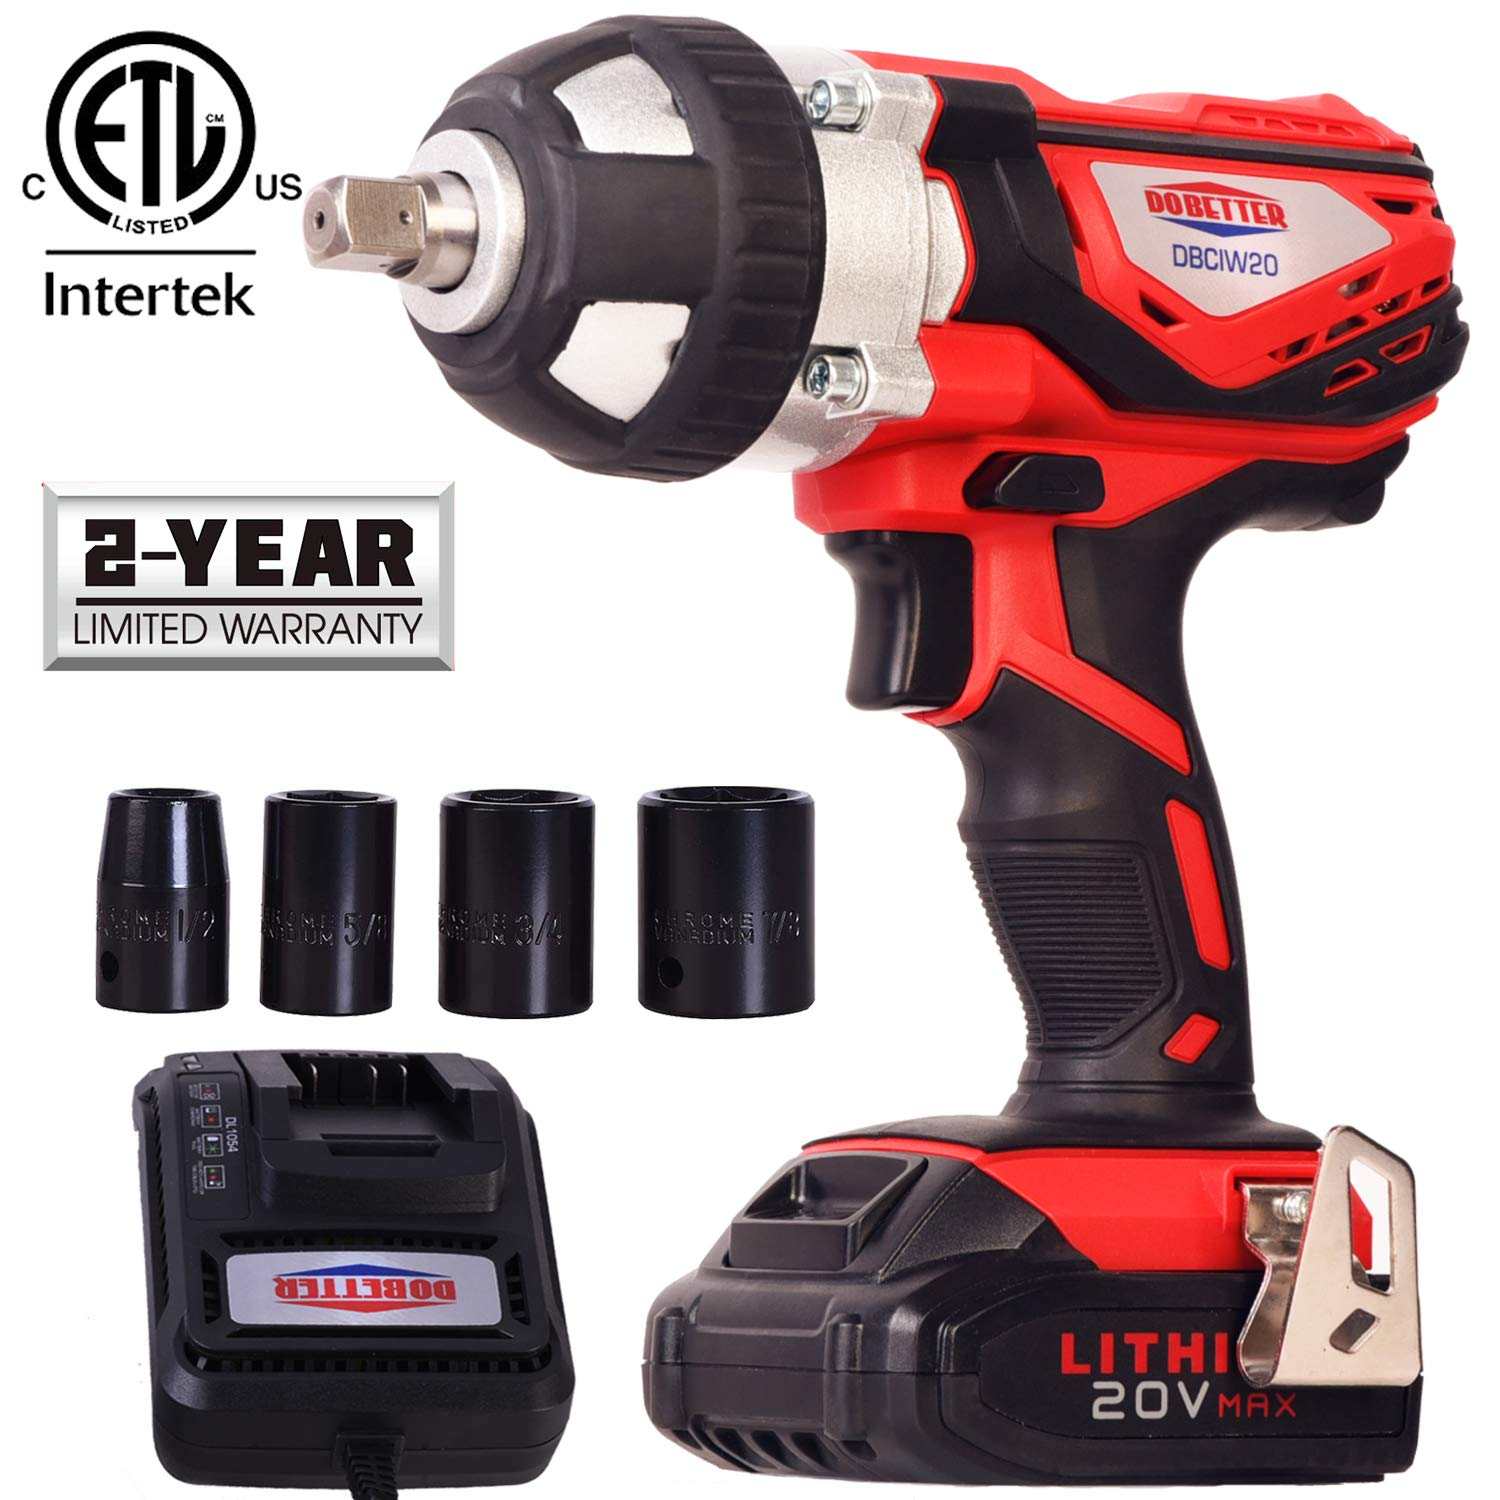 Dobetter Cordless Portable Electric DBCIW20